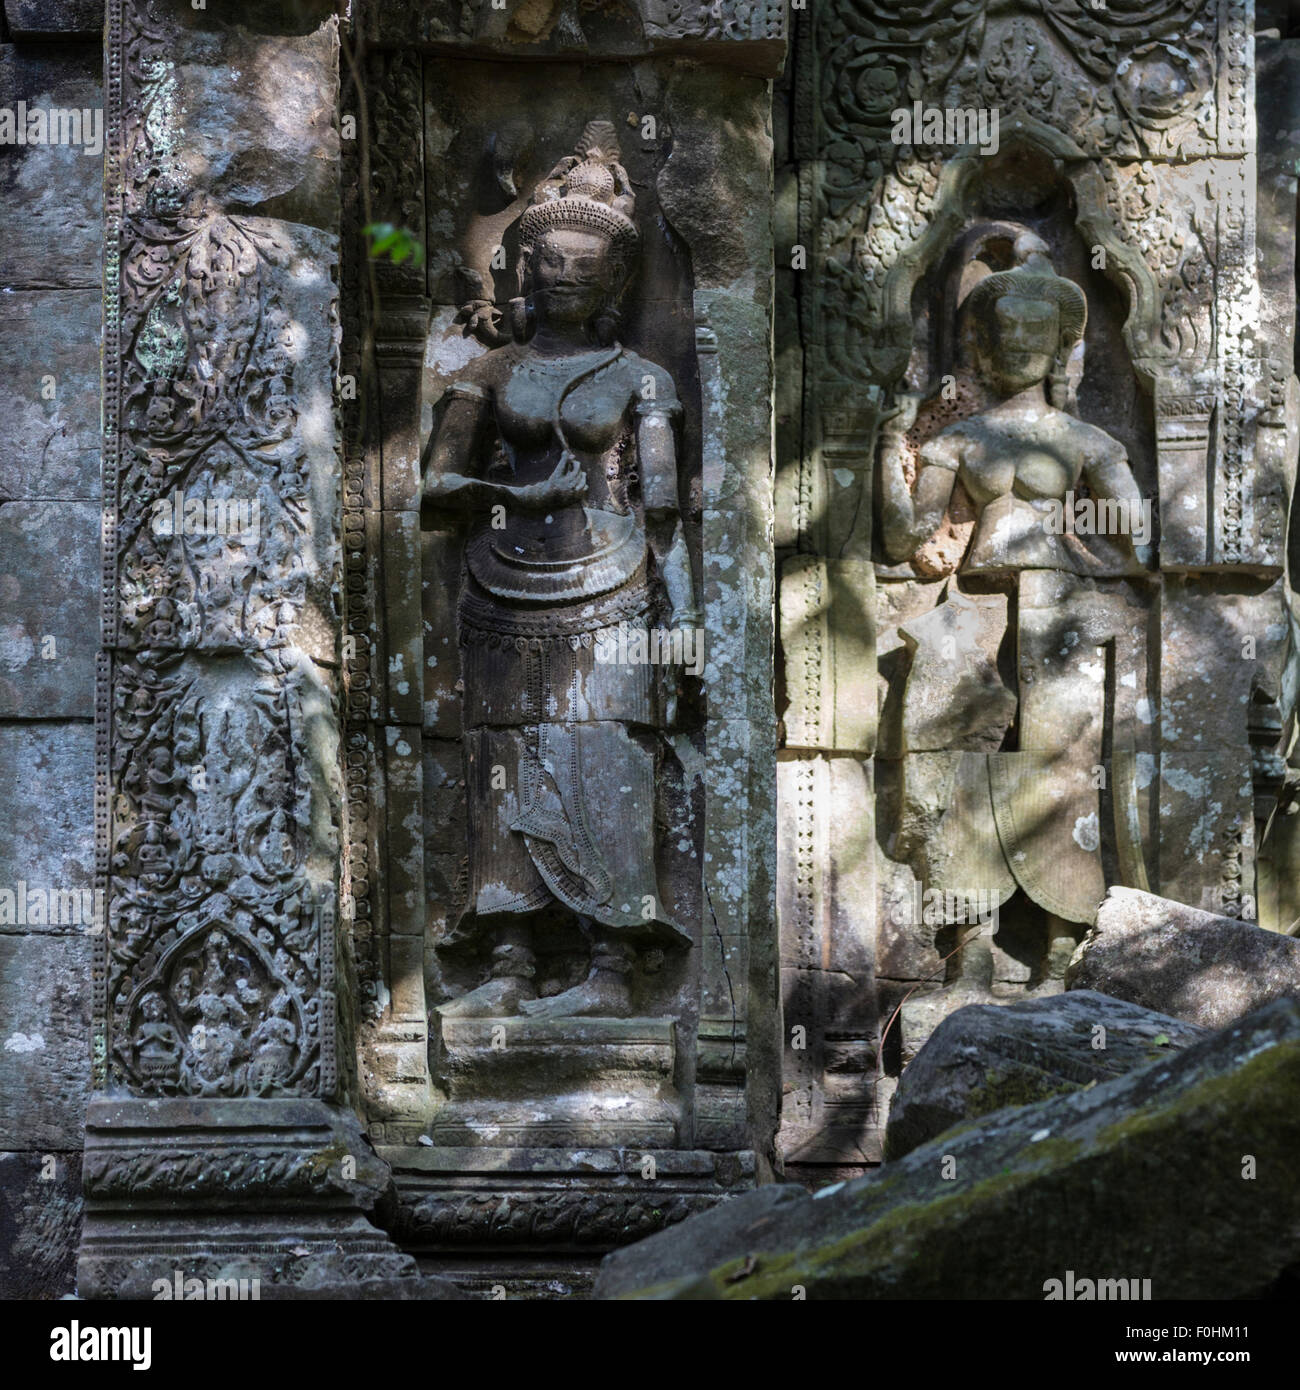 Apsara reliefs in Koh Ker, a Khmer archaeological site 2.5 hours north of Siem Reap and Angkor Wat in Cambodia. - Stock Image